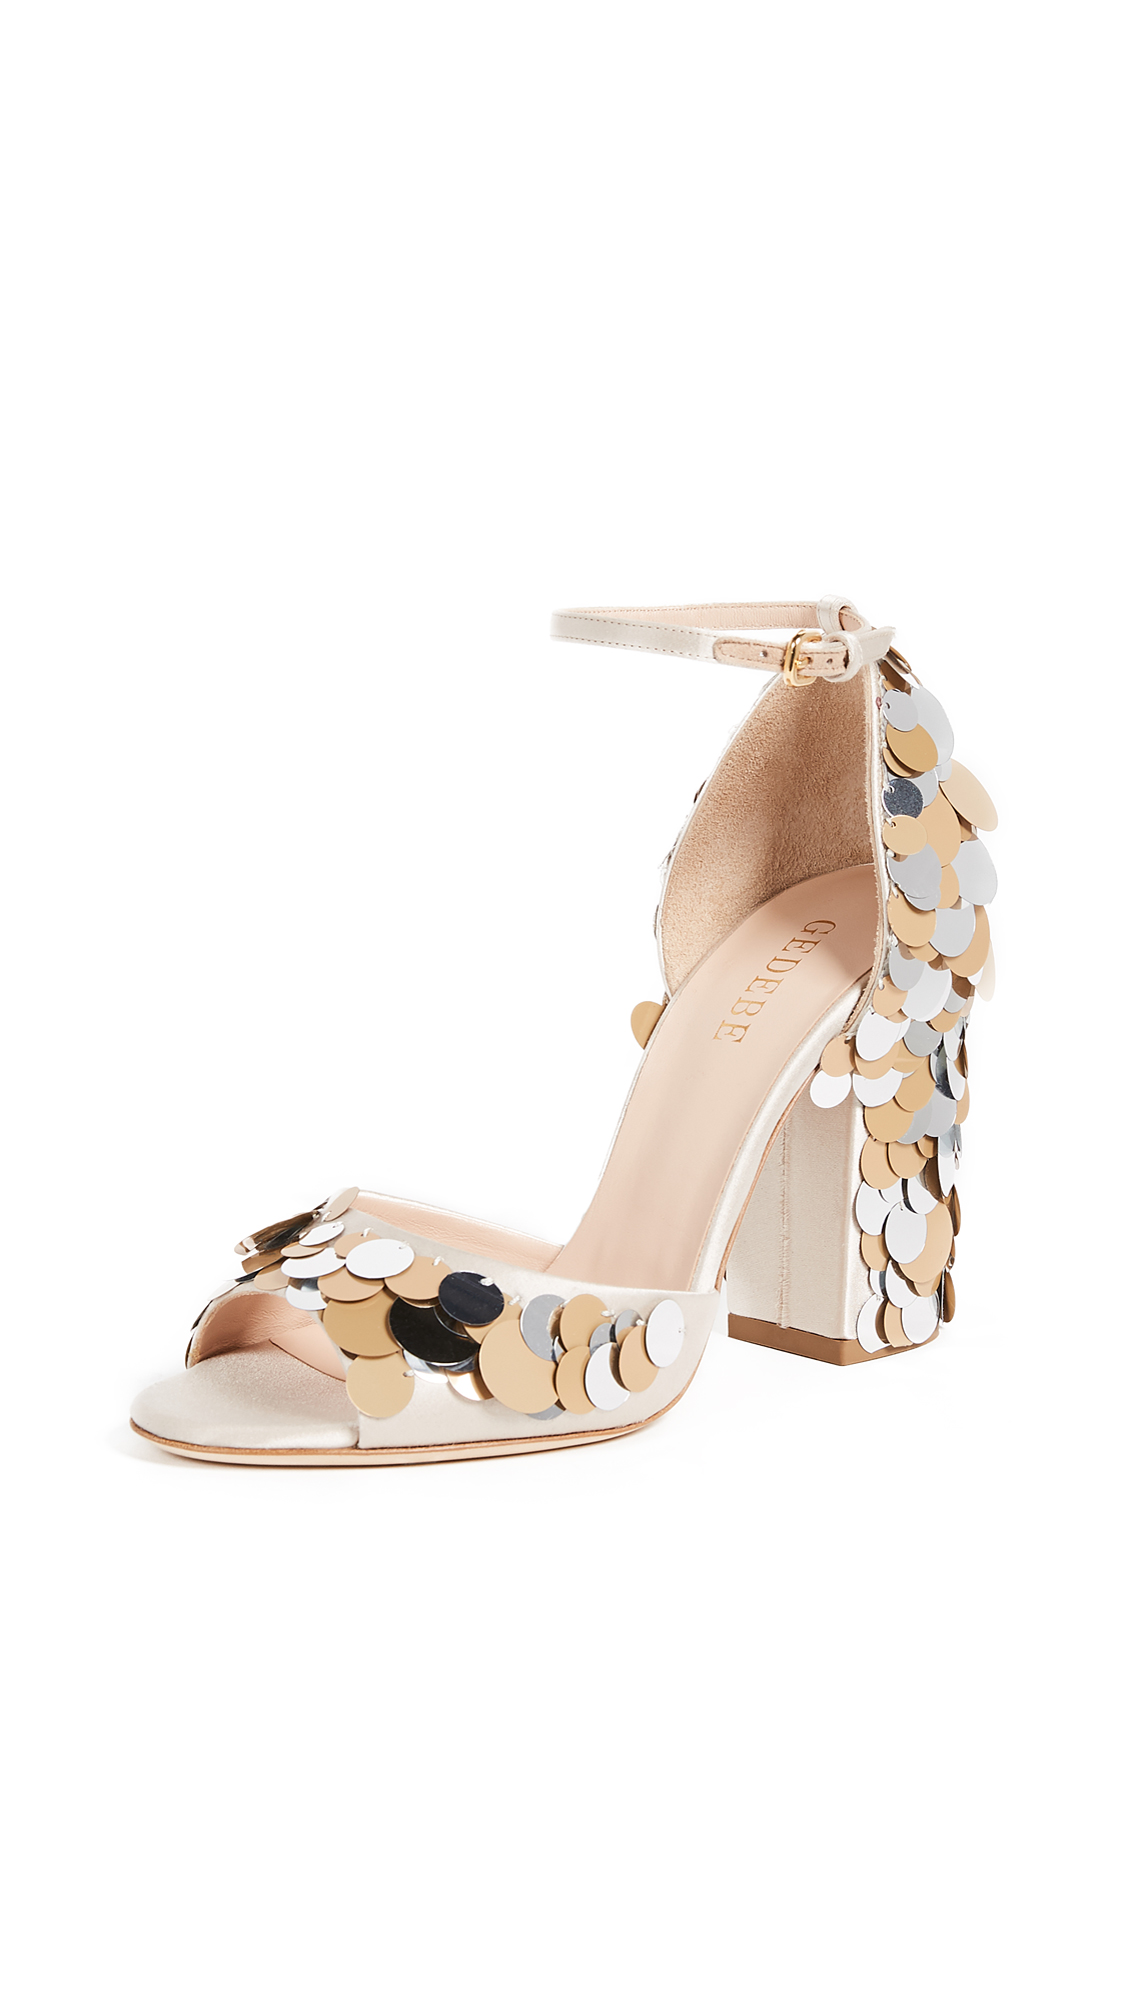 Gedebe Jenny Sandals - Silver/Gold